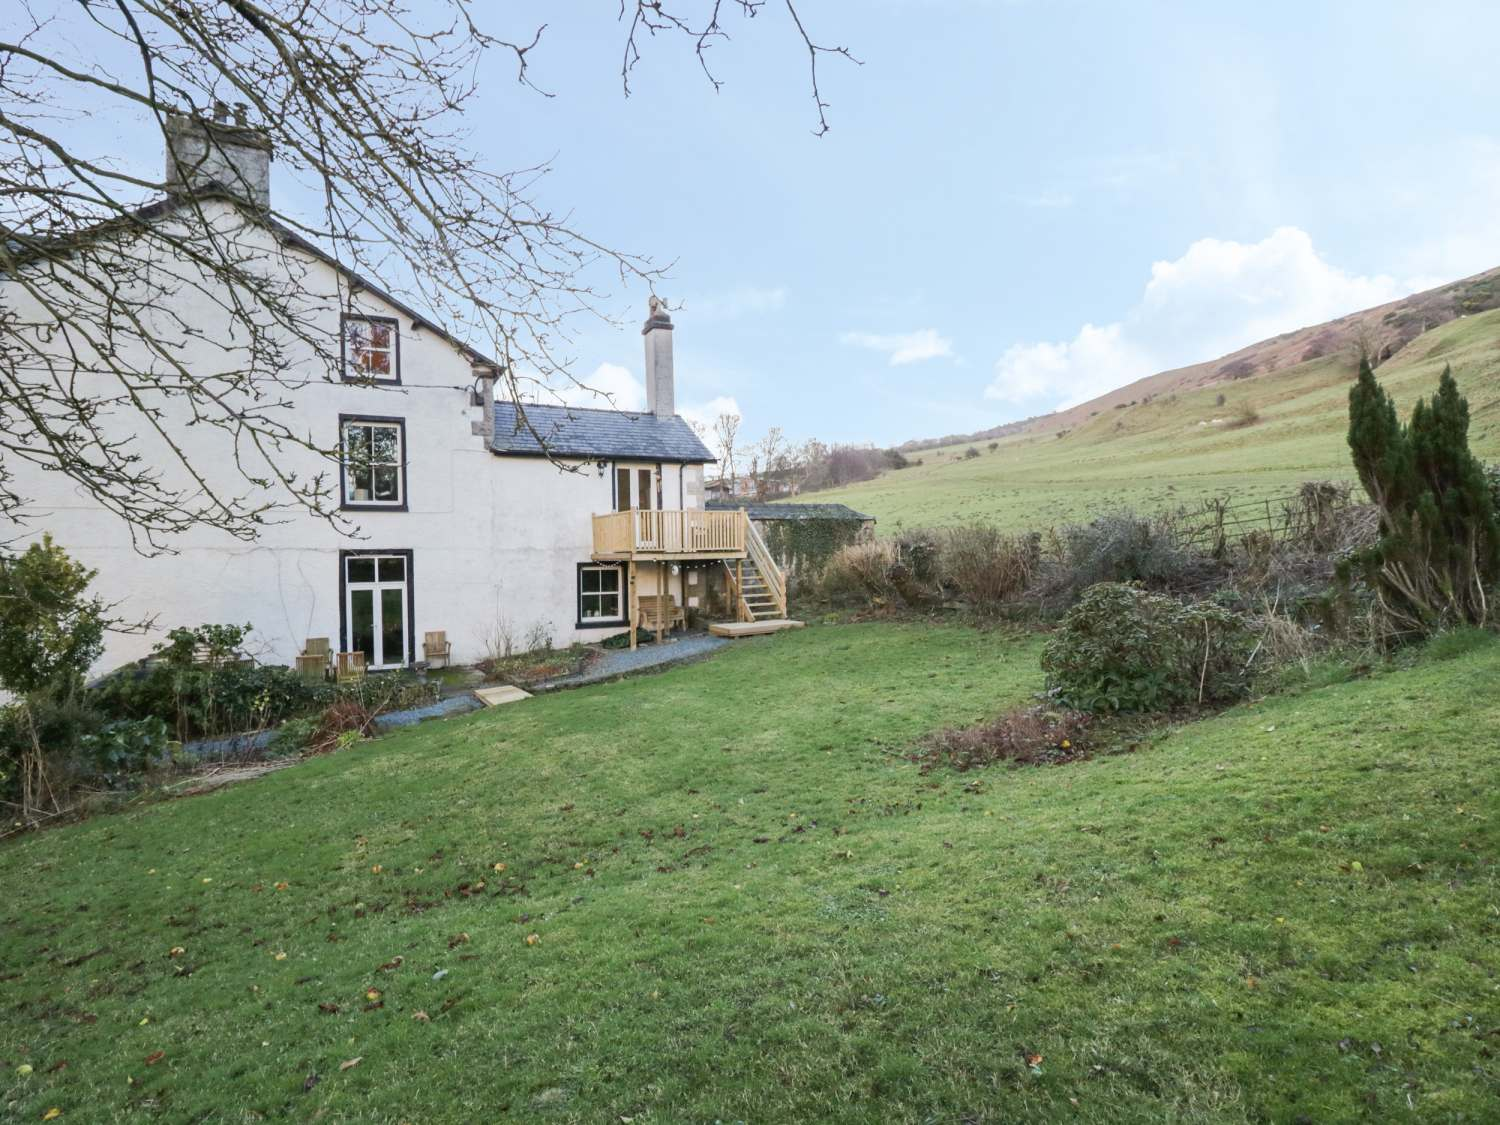 Cottage in Kirkby in Furness, Lake District